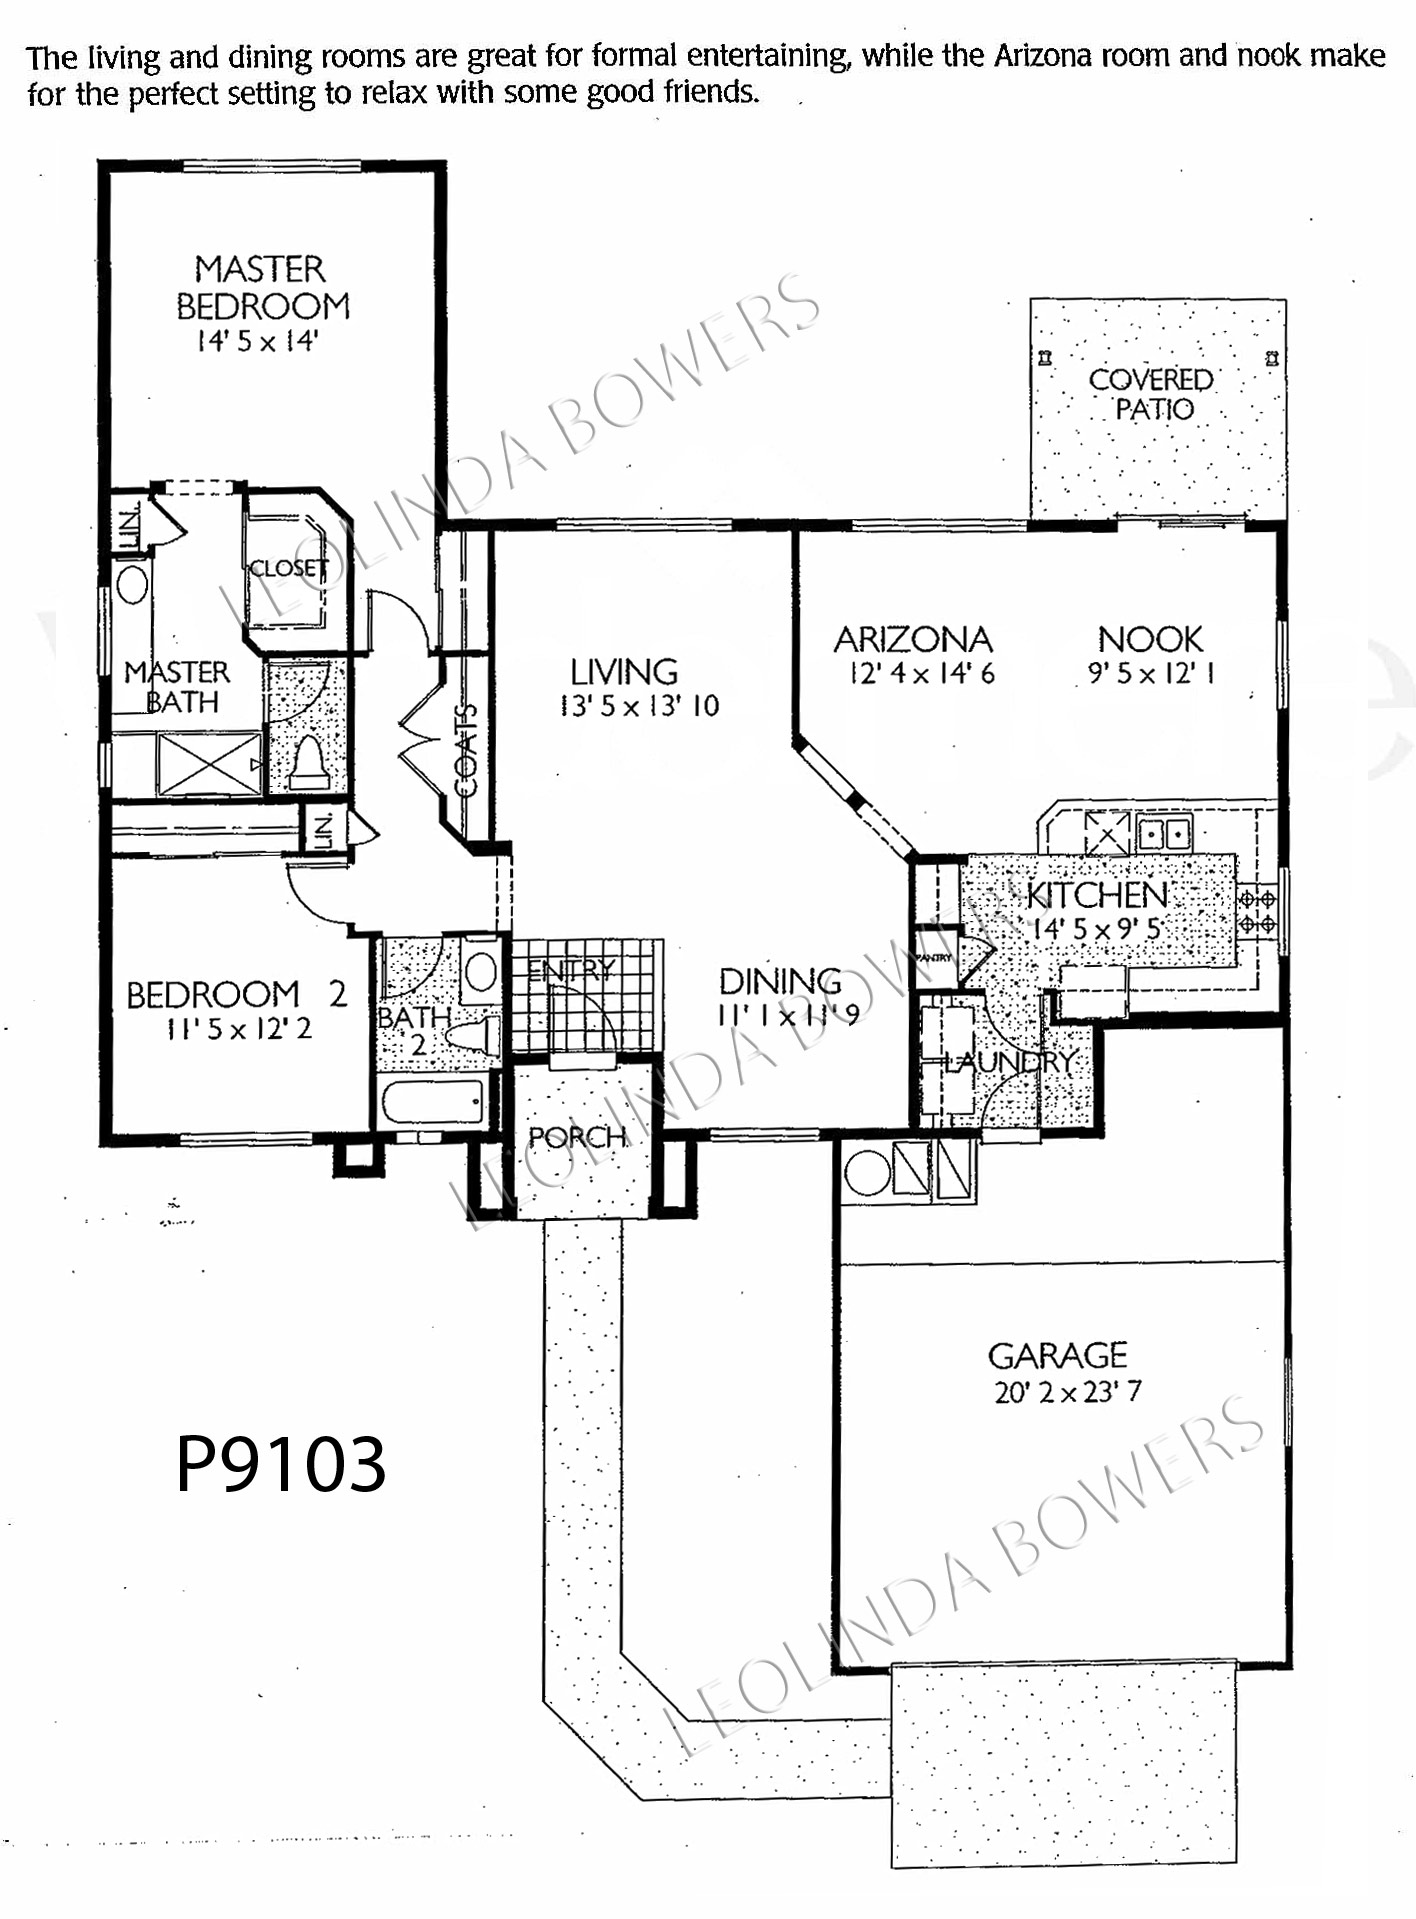 Sun City Grand Manzanita model floor plan